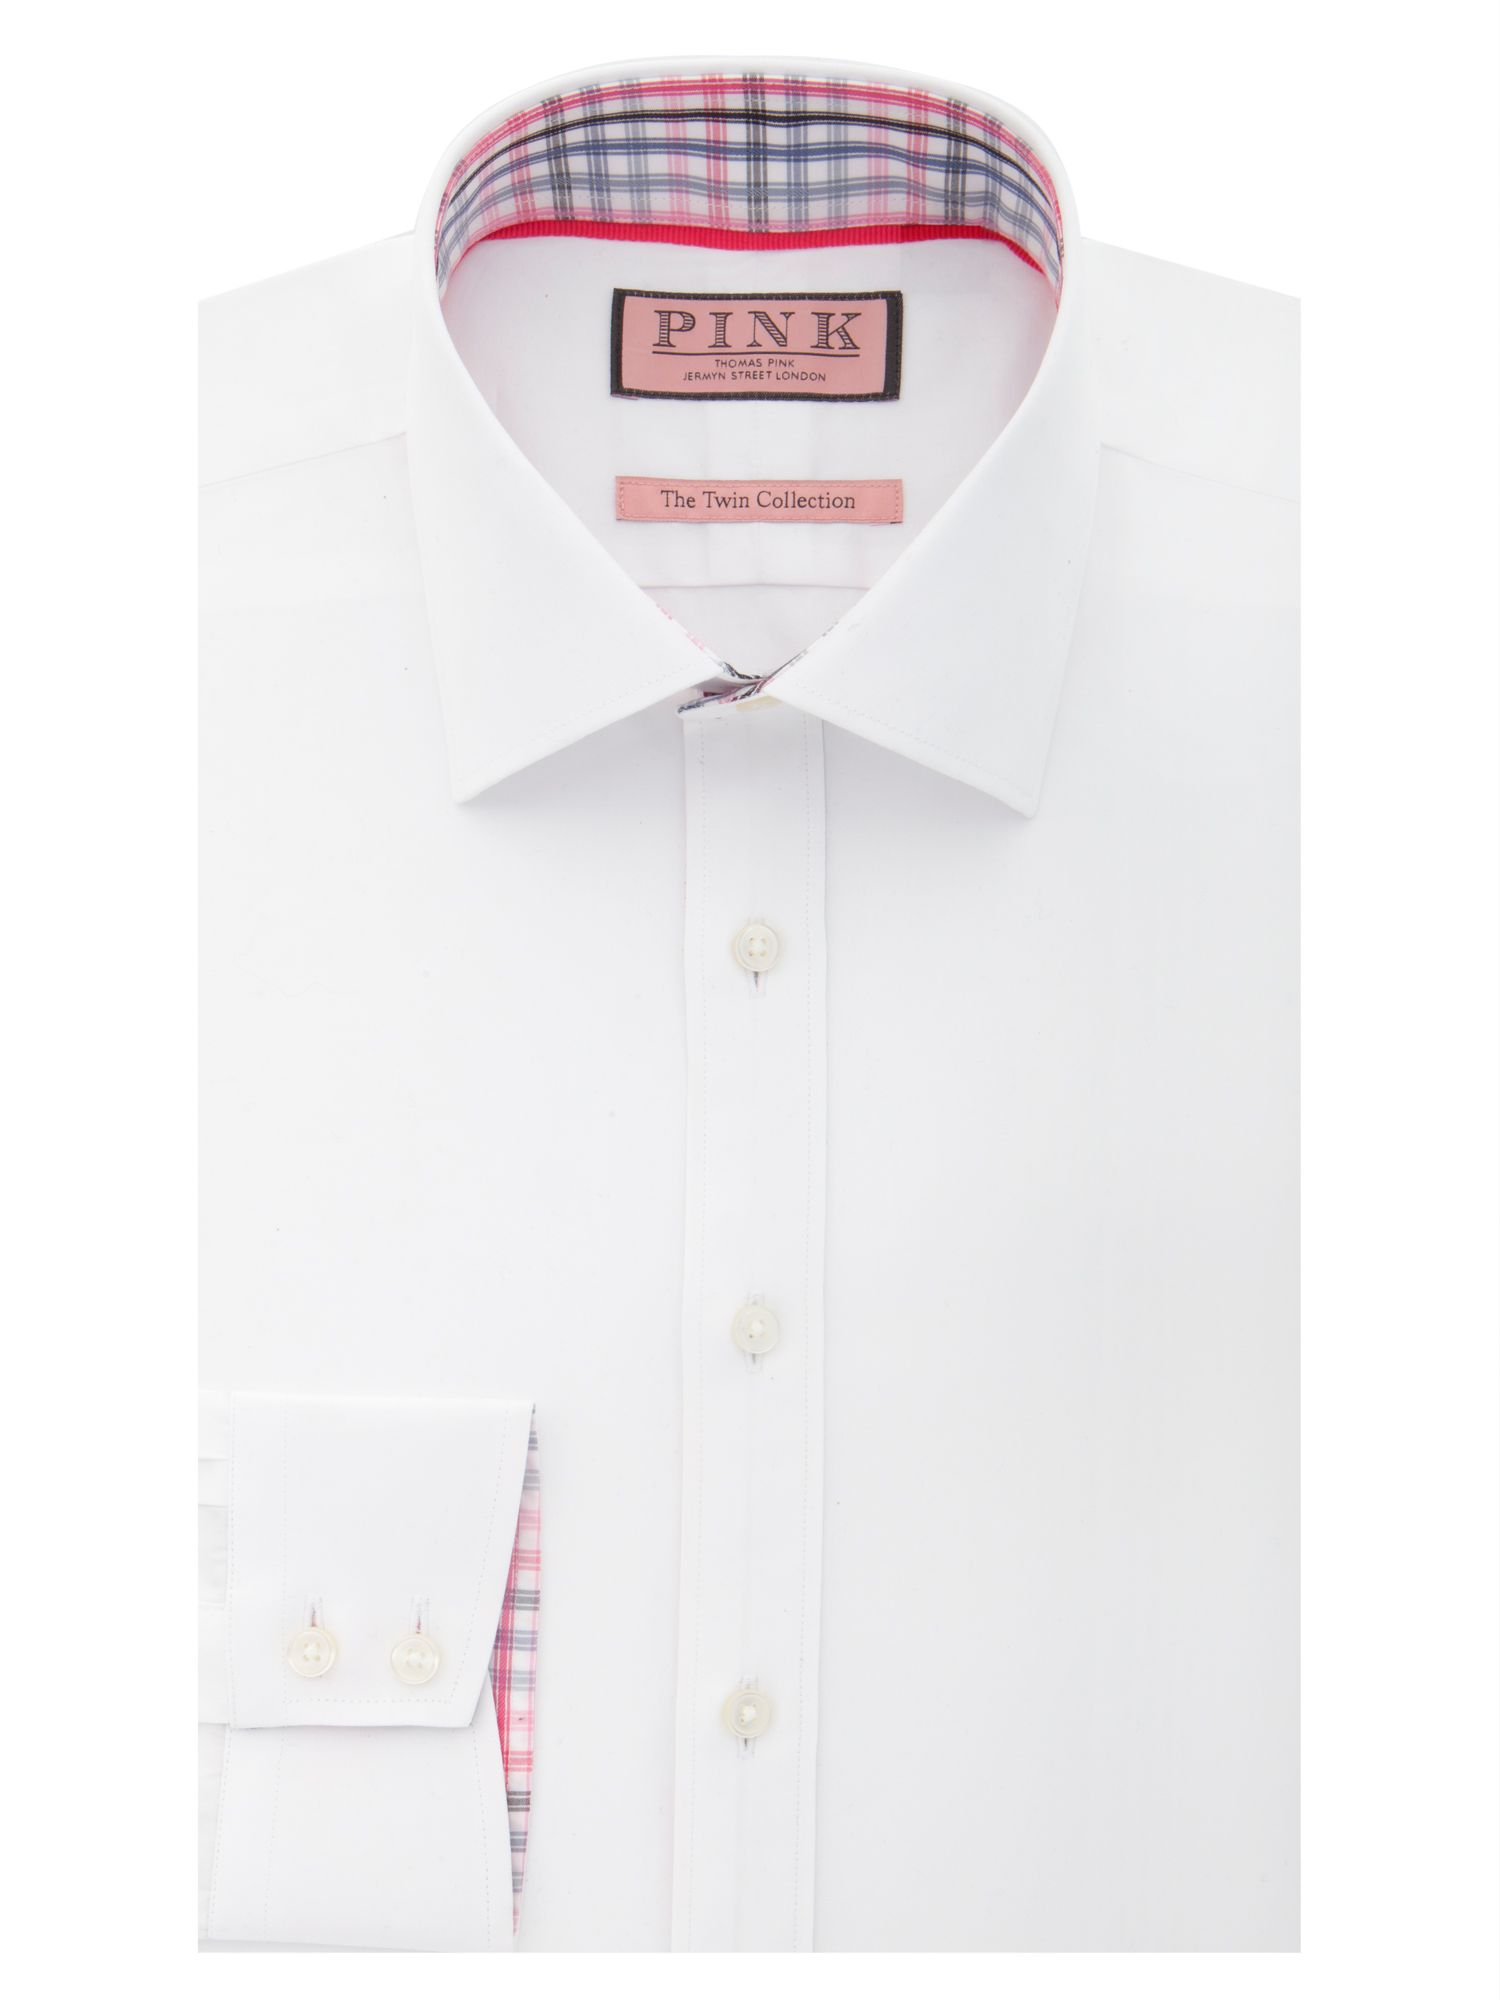 Stirling plain long sleeve shirt